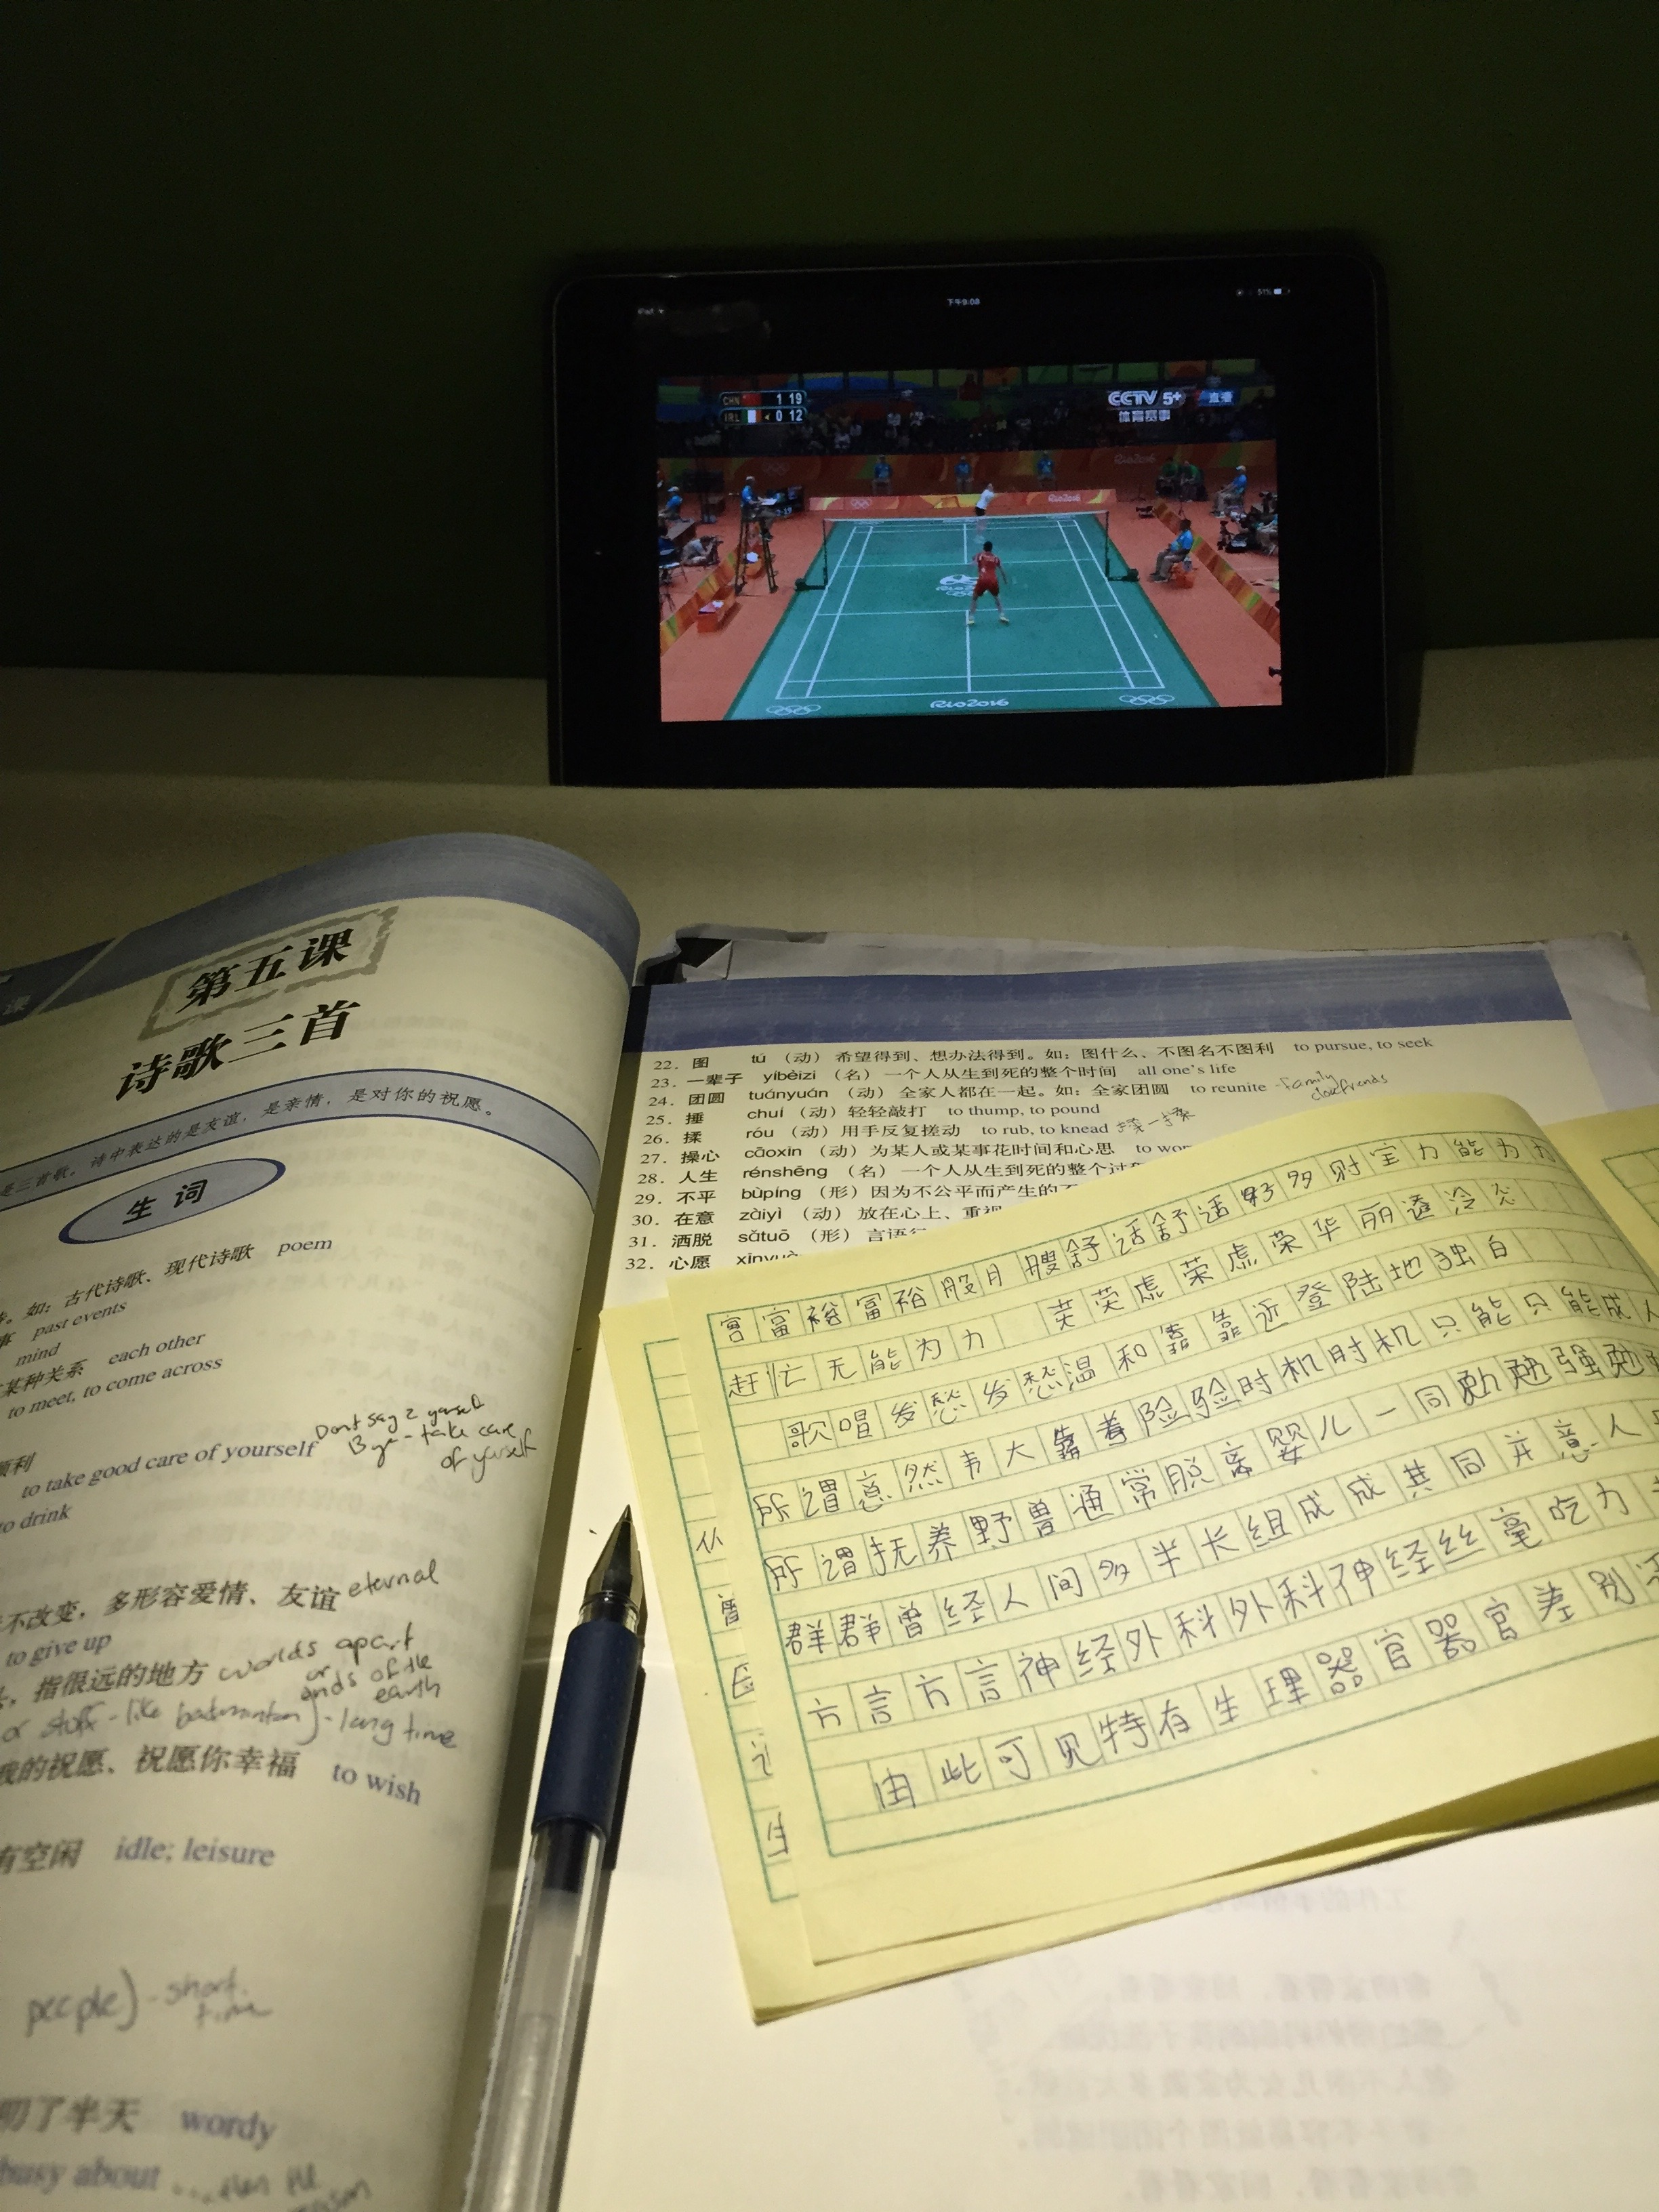 Olympic badminton and studying chinese